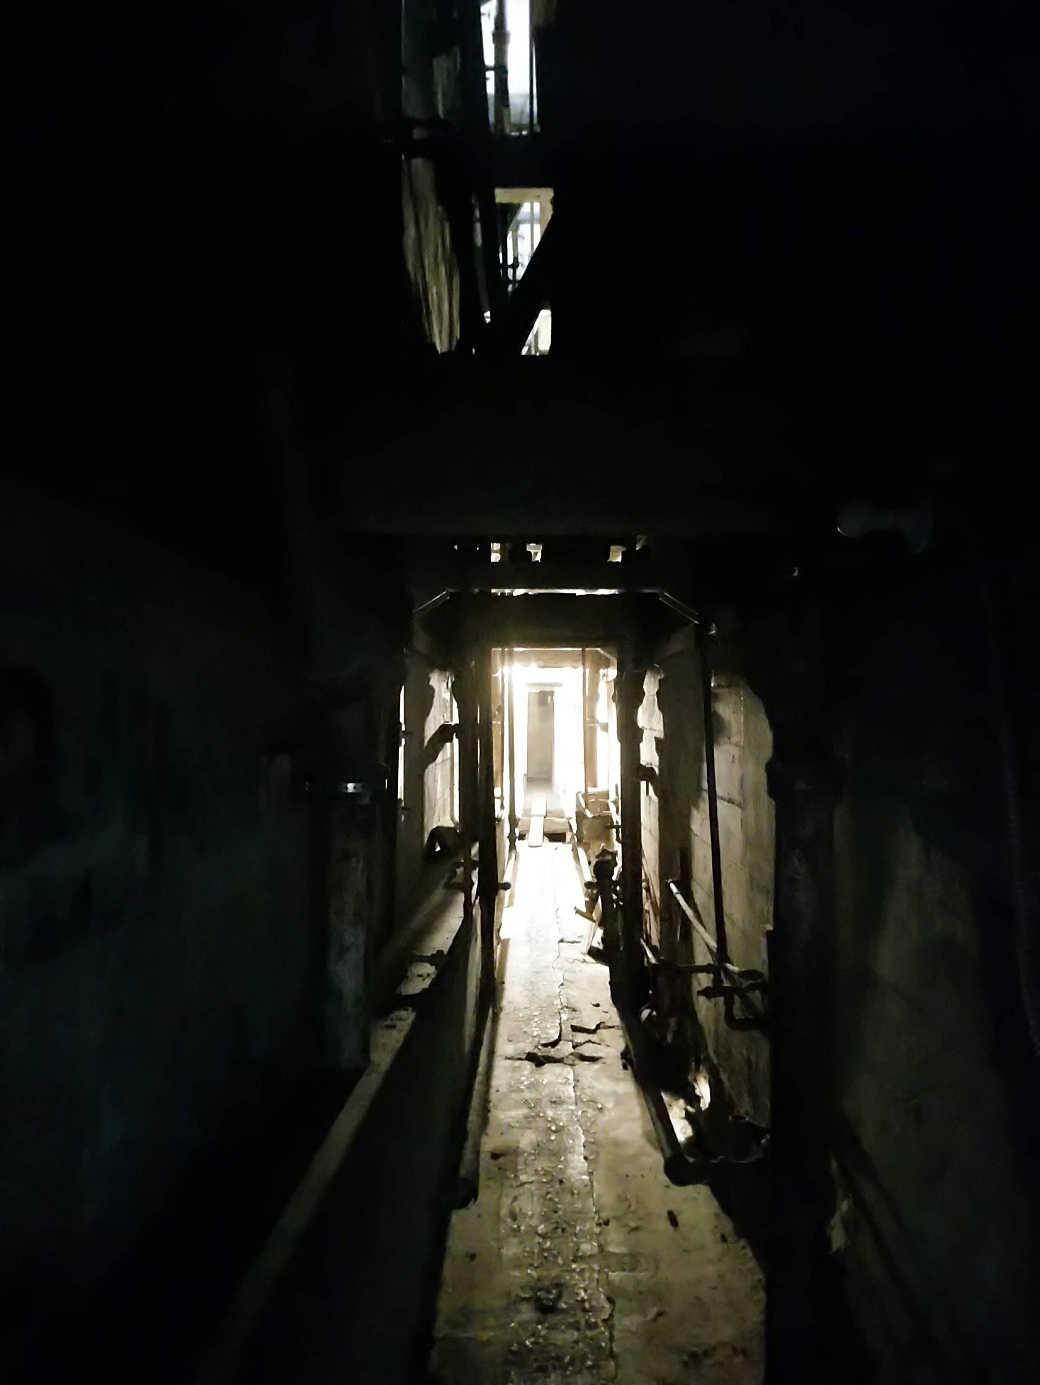 The space between cell blocks. This is how you escape Alcatraz, by tunneling thru the wall and climbing up to the roof.